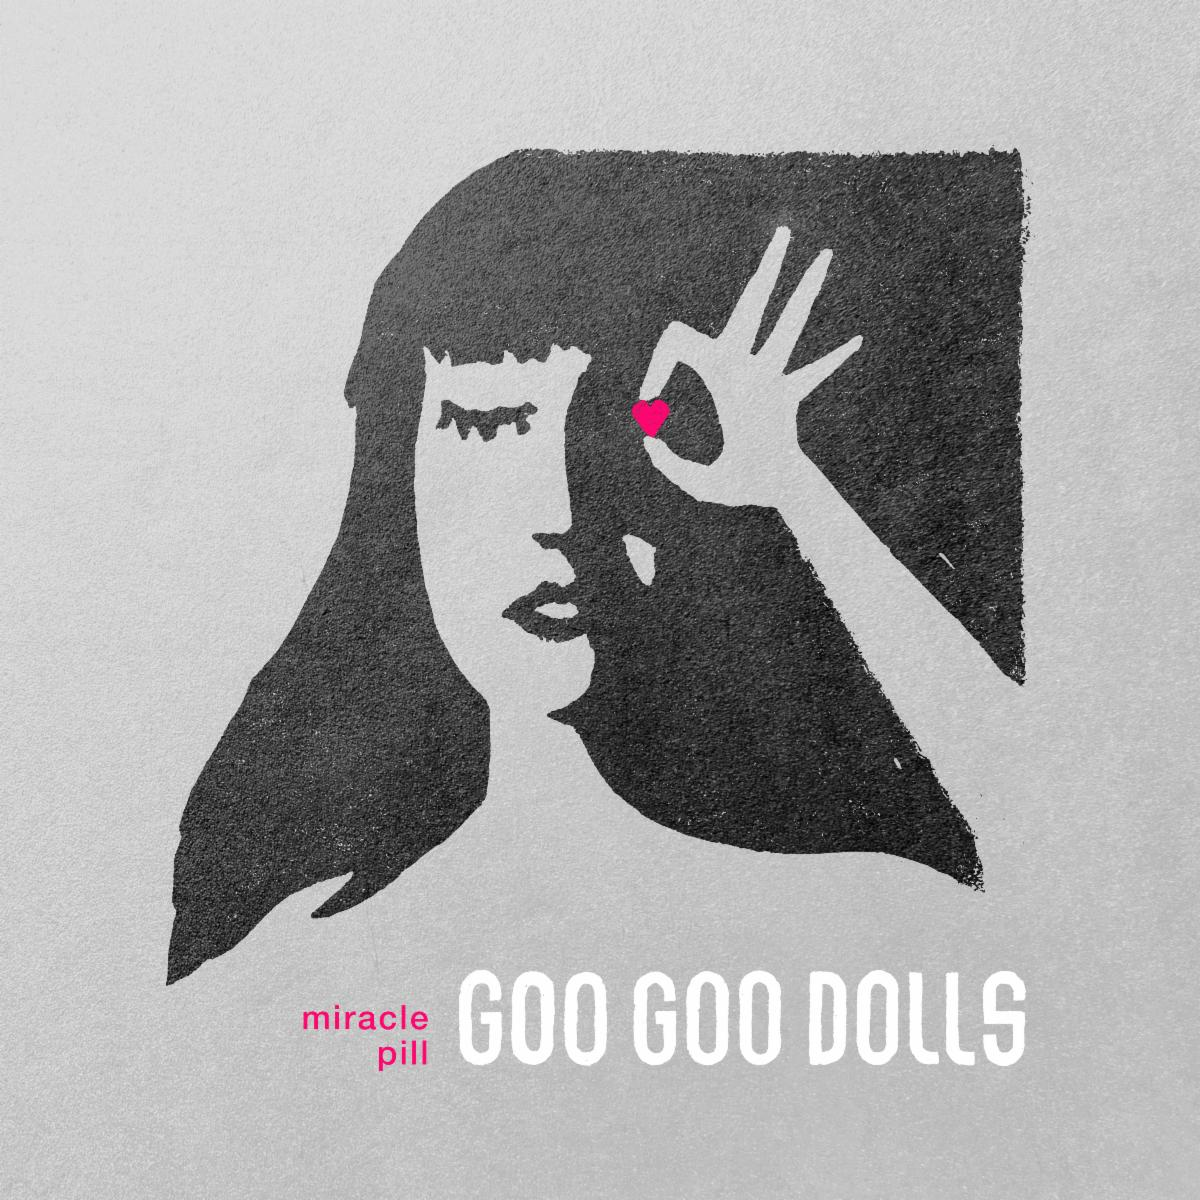 Goo Goo Dolls Announce Release of Miracle Pill (Deluxe Edition), Out July 10th Via Warner Records